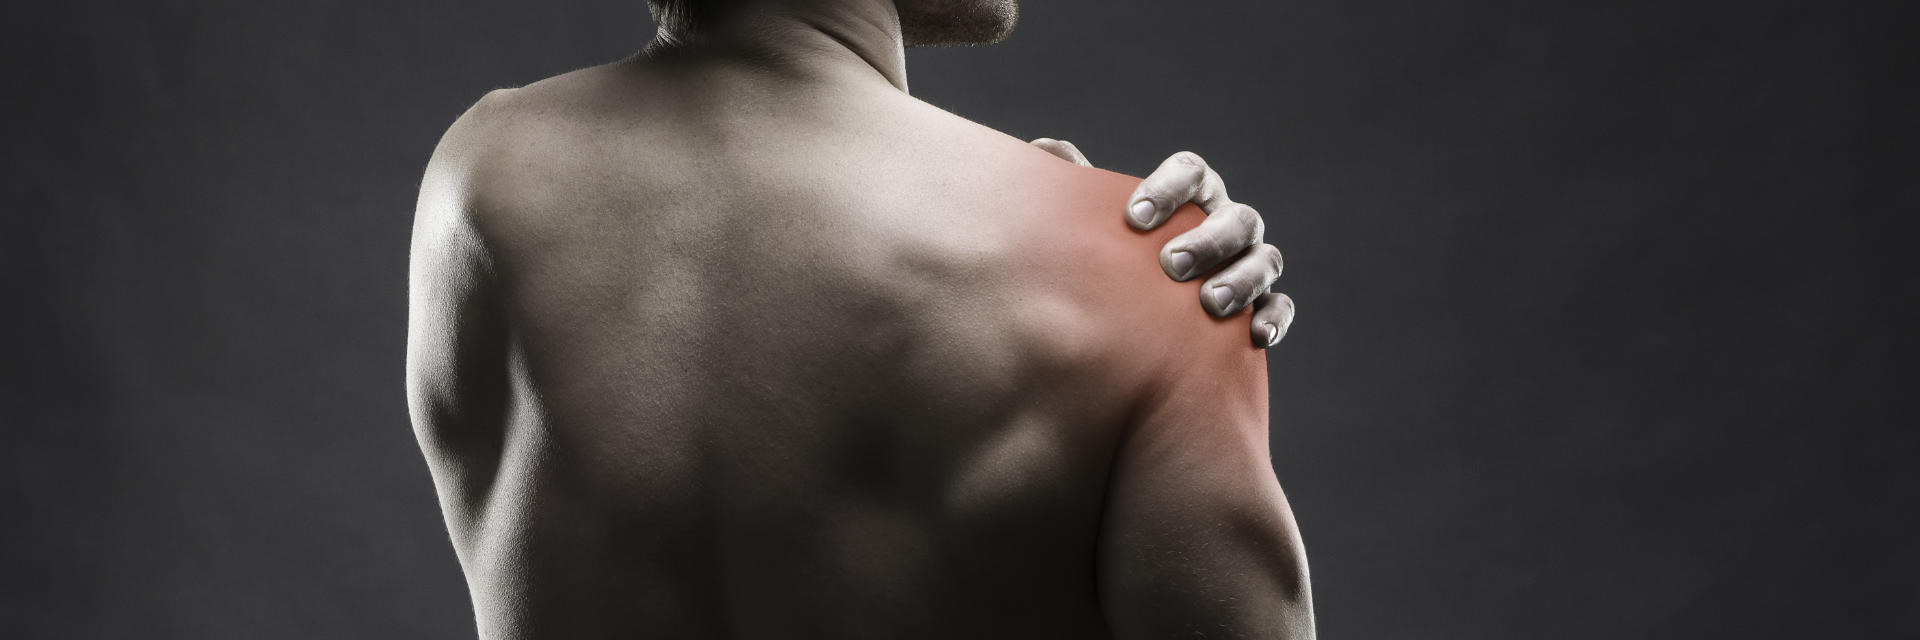 A man with suffering from shoulder tendonitis.